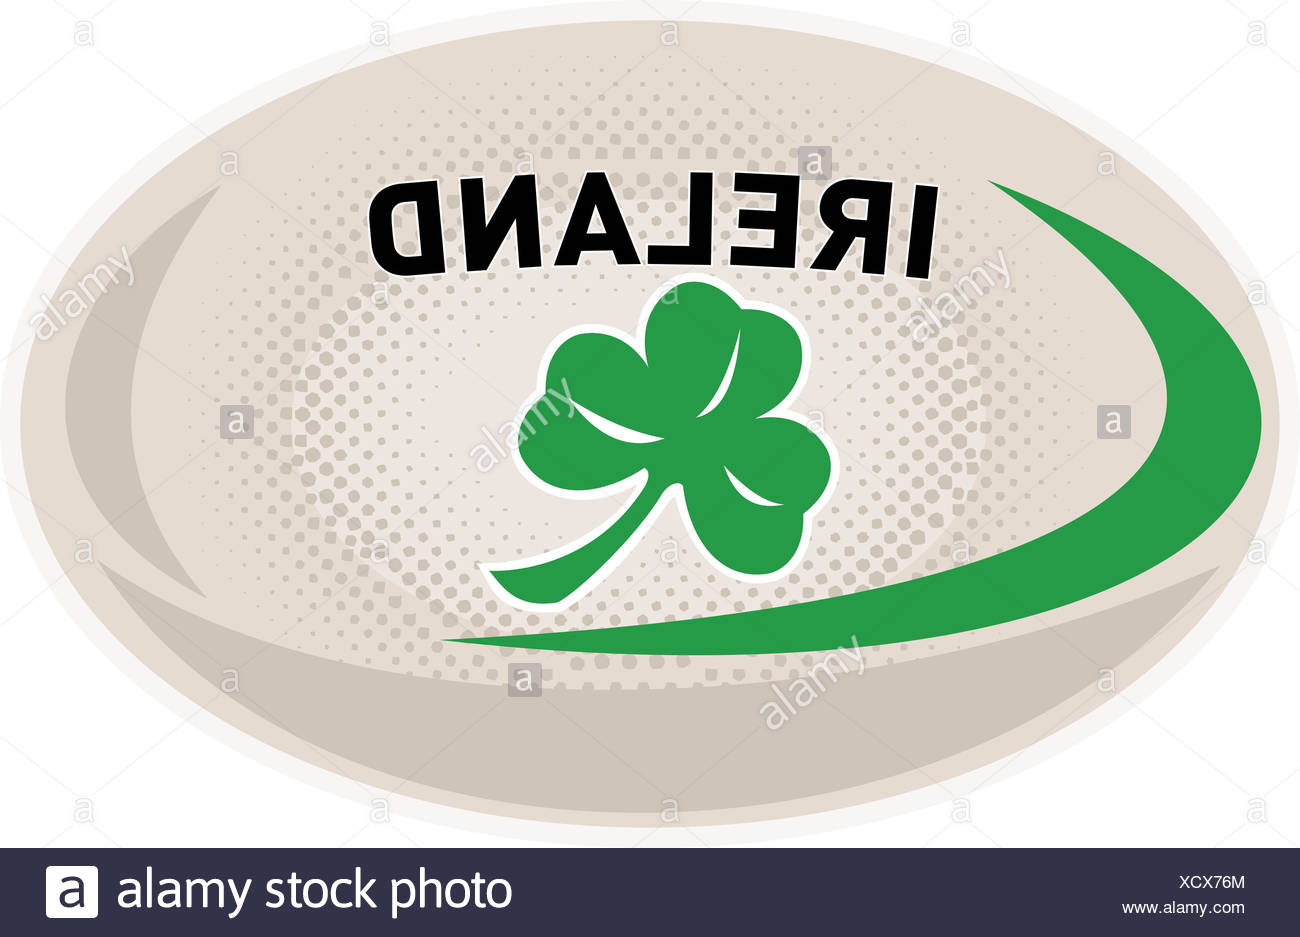 6 Ireland Green /& White Rugby Ball With Shamrock